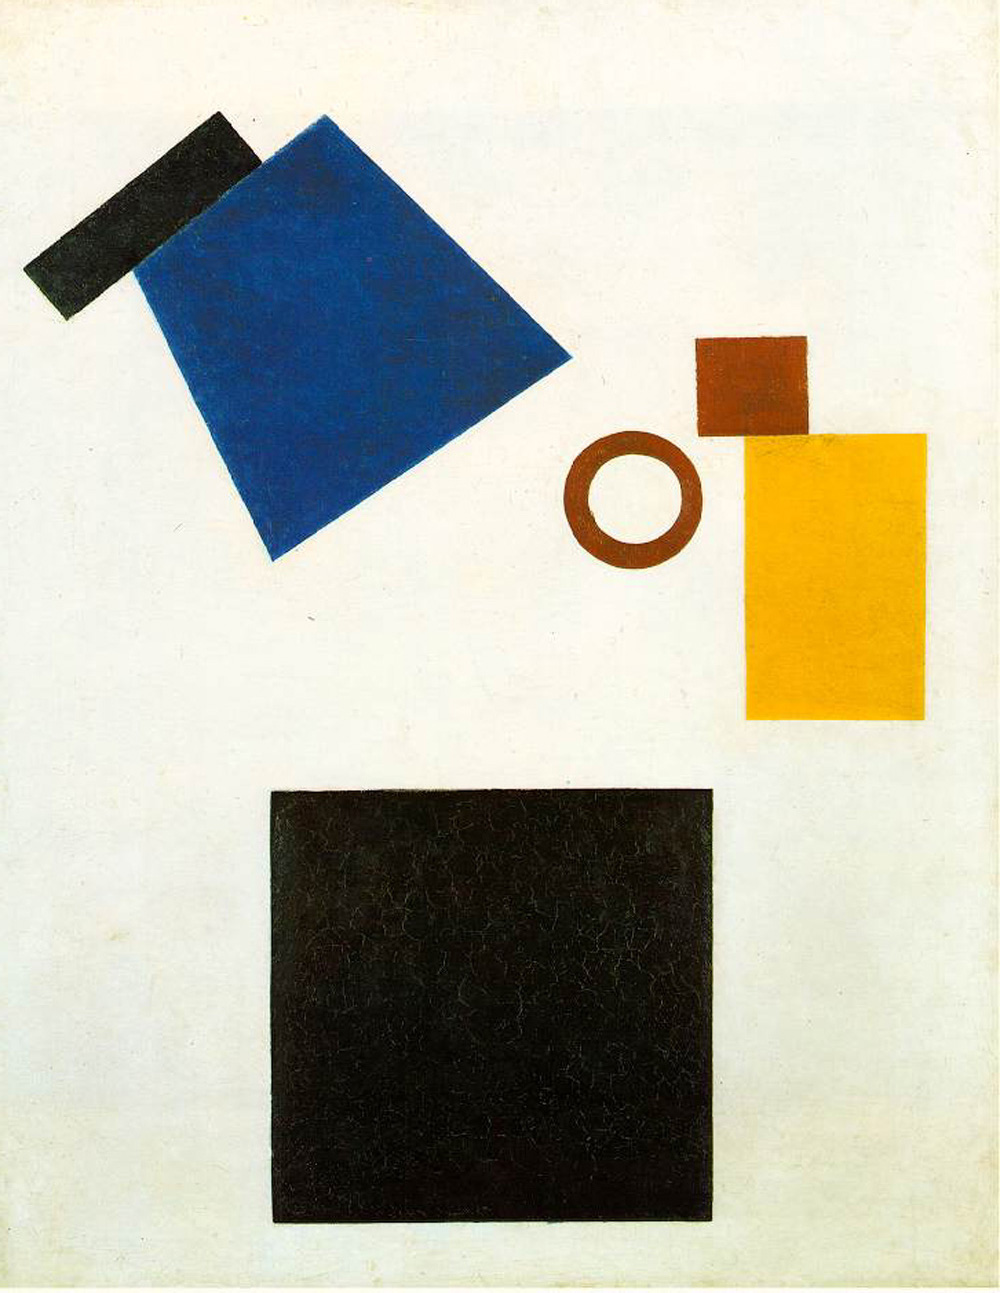 kazimir malevich beyond the black square the daily norm